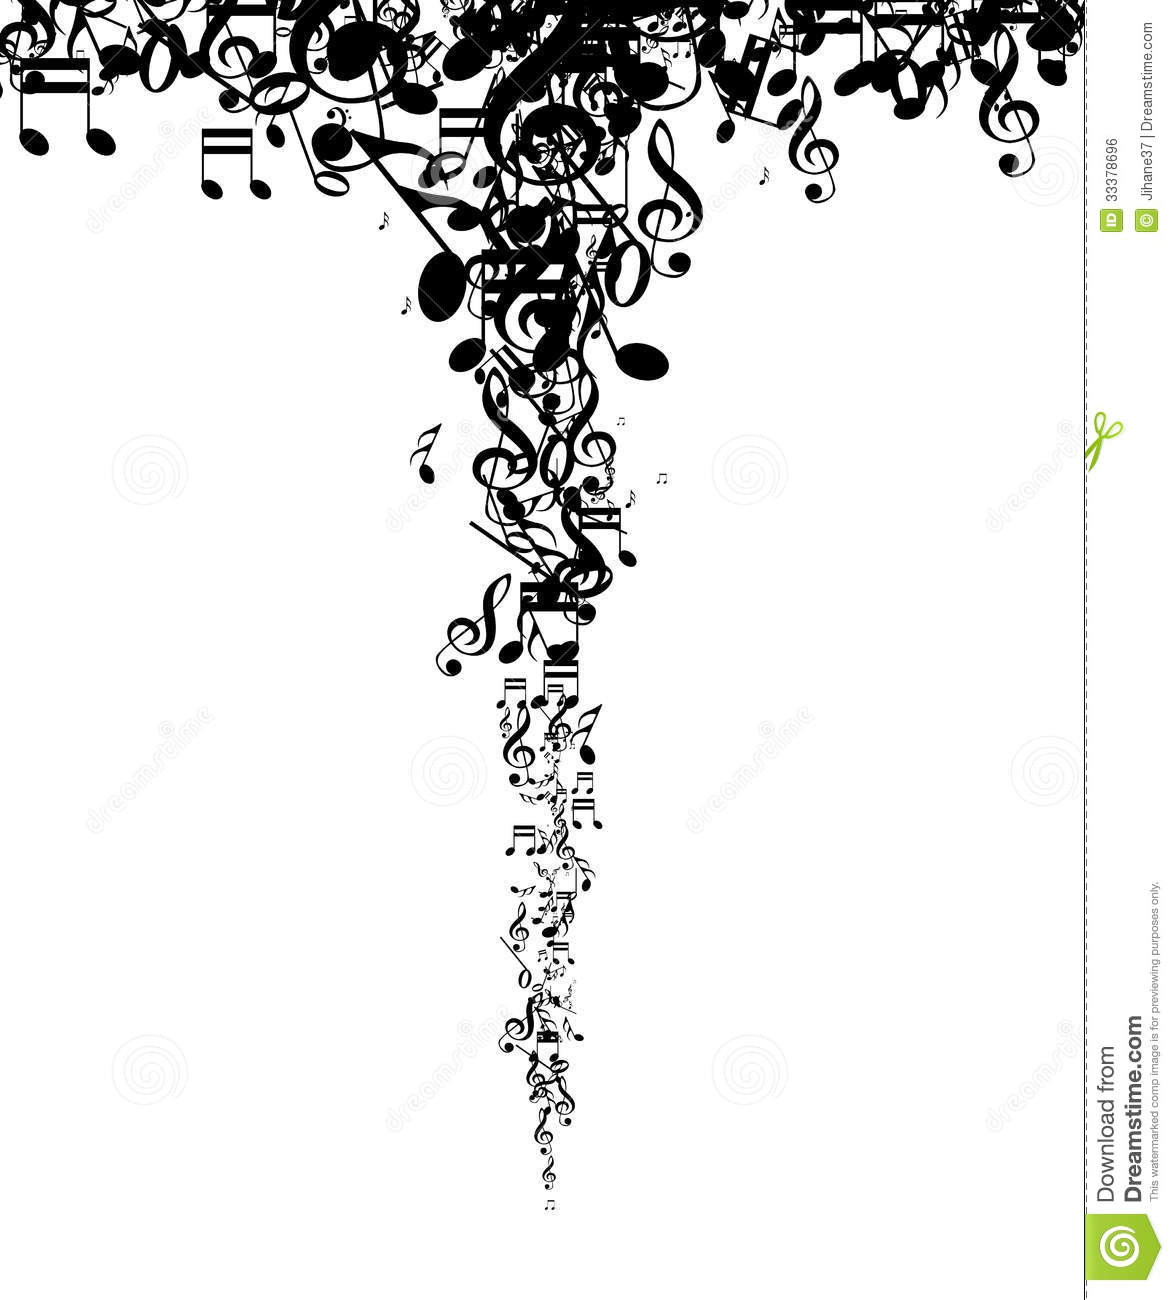 Silhouette Music Notes Background Royalty Free Stock Image - Image ...